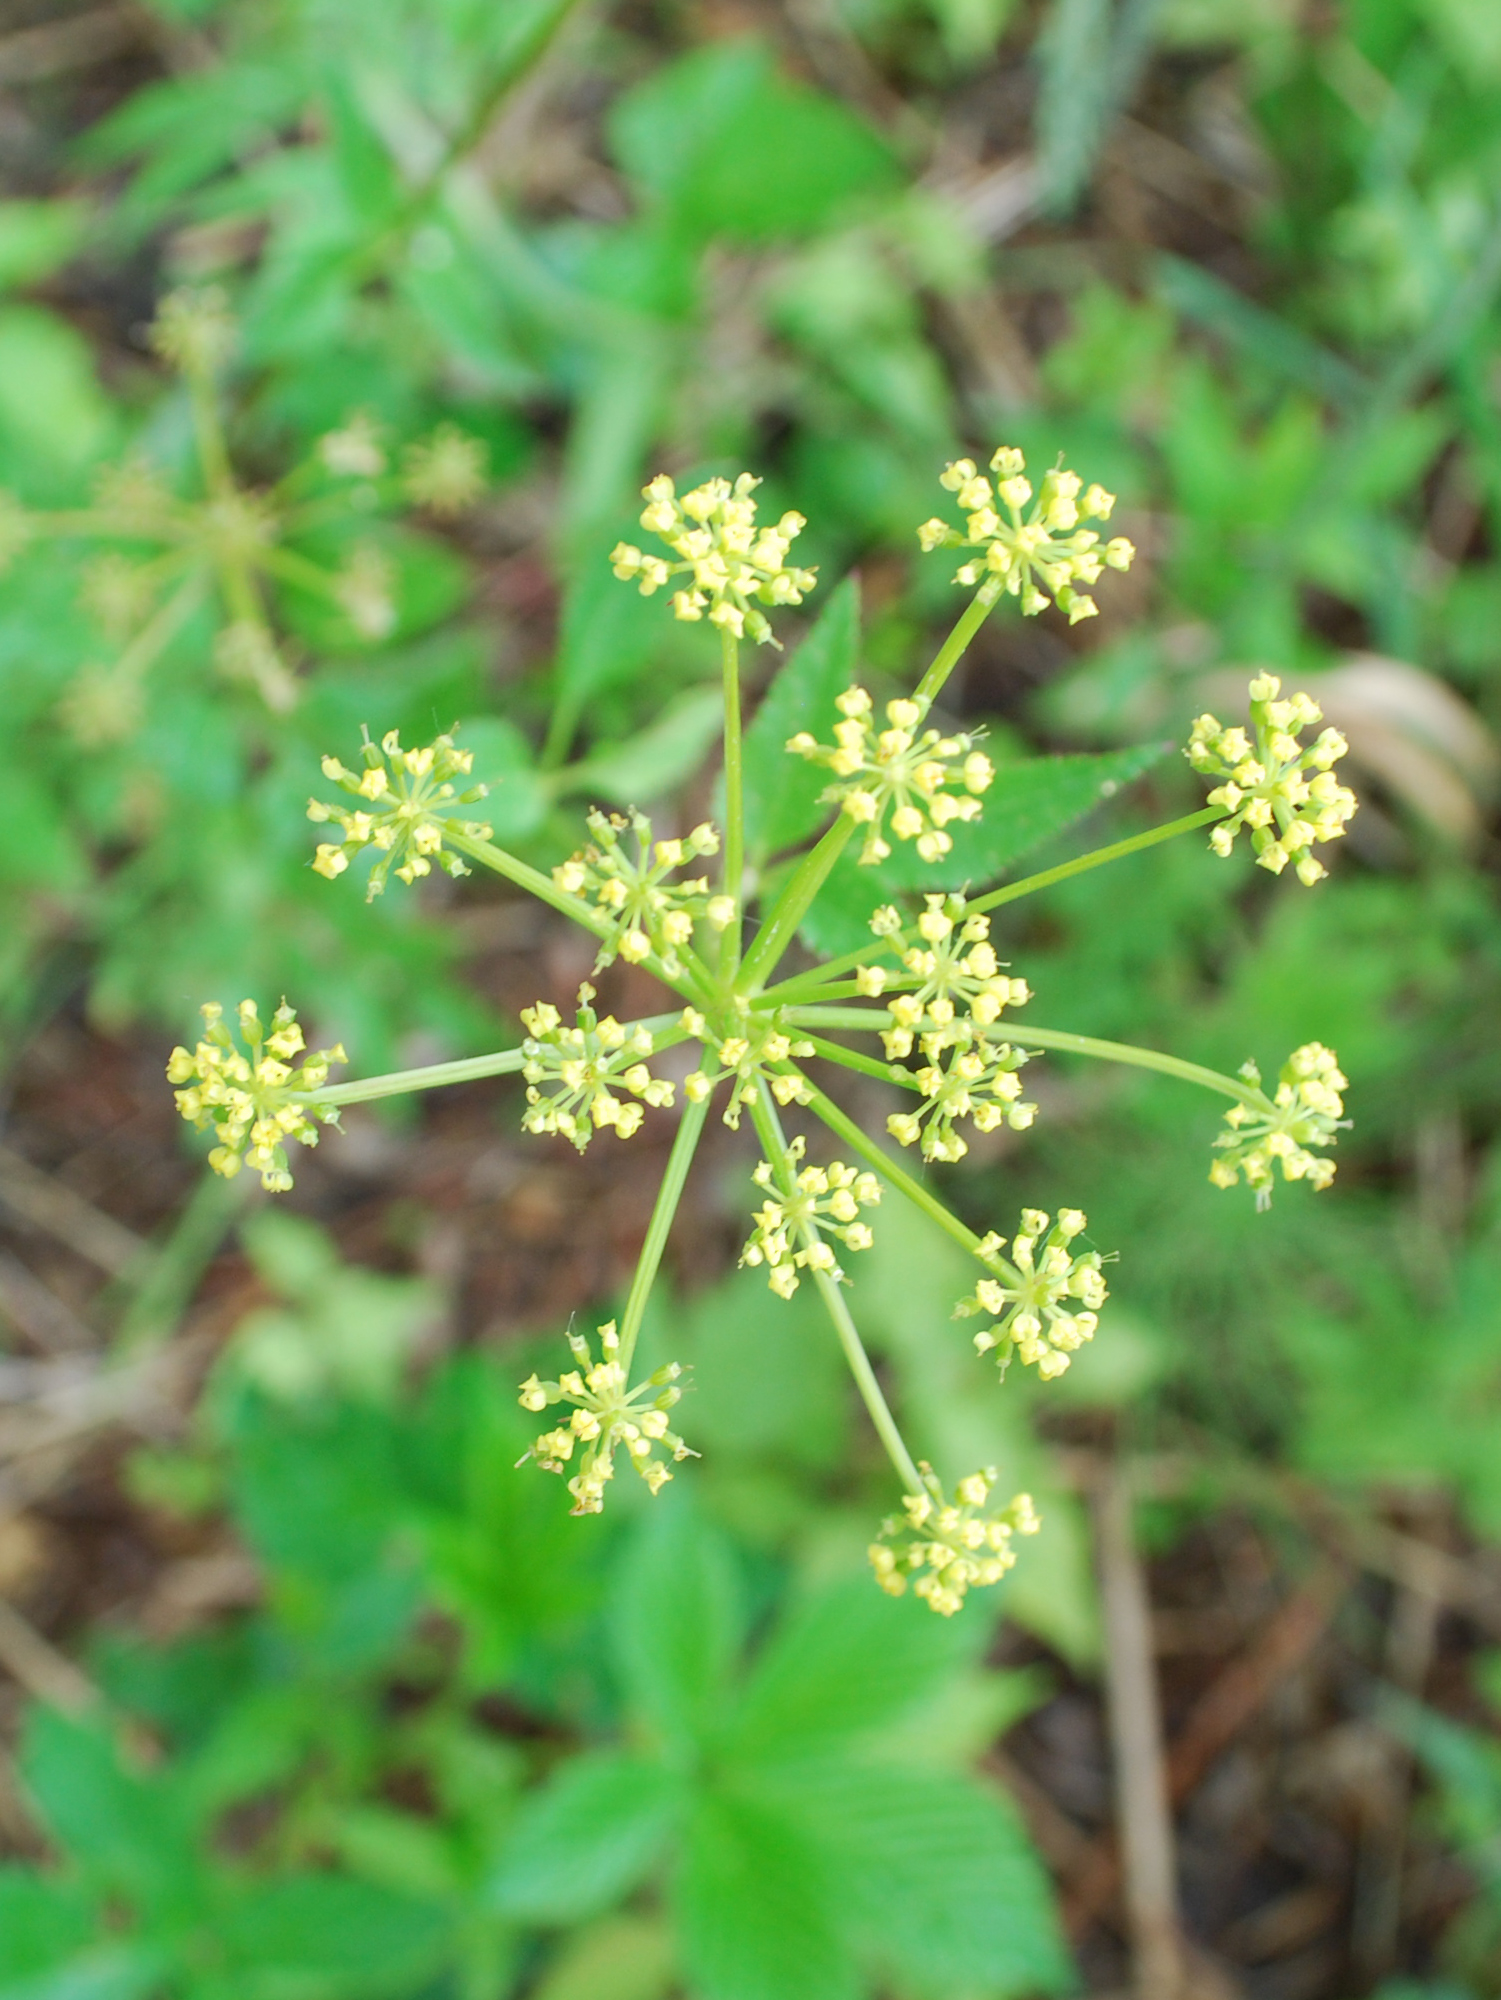 Wild parsnip (Pastinaca sativa) bloom closeup